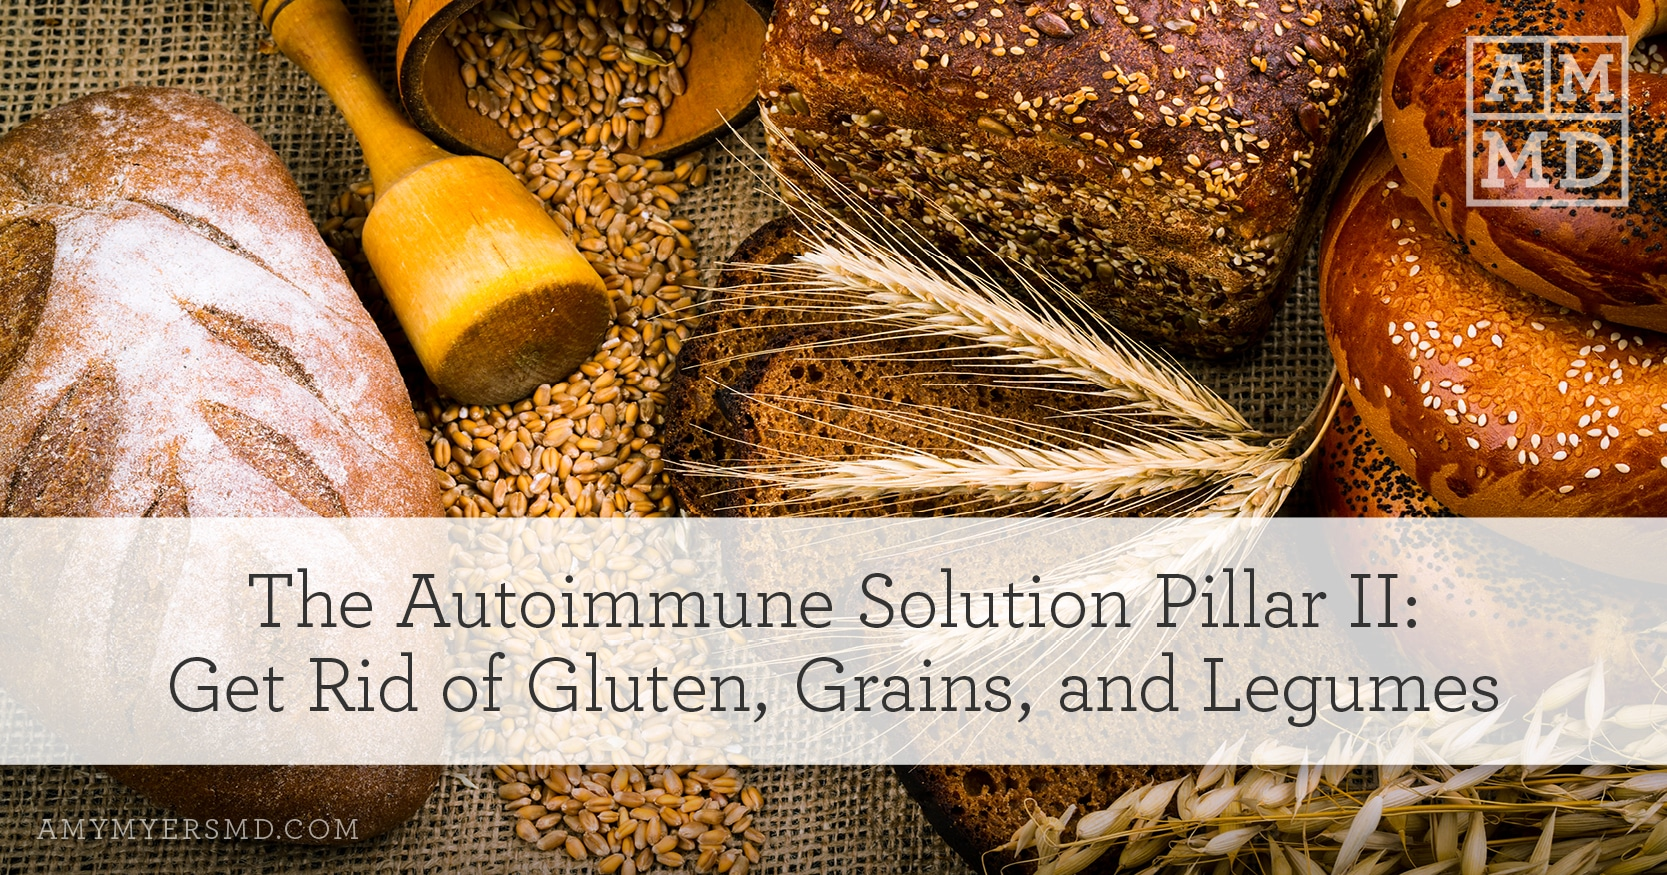 The Autoimmune Solution Pillar II: Get Rid of Gluten, Grains, and Legumes - Breads and Grain - Featured Image - Amy Myers MD